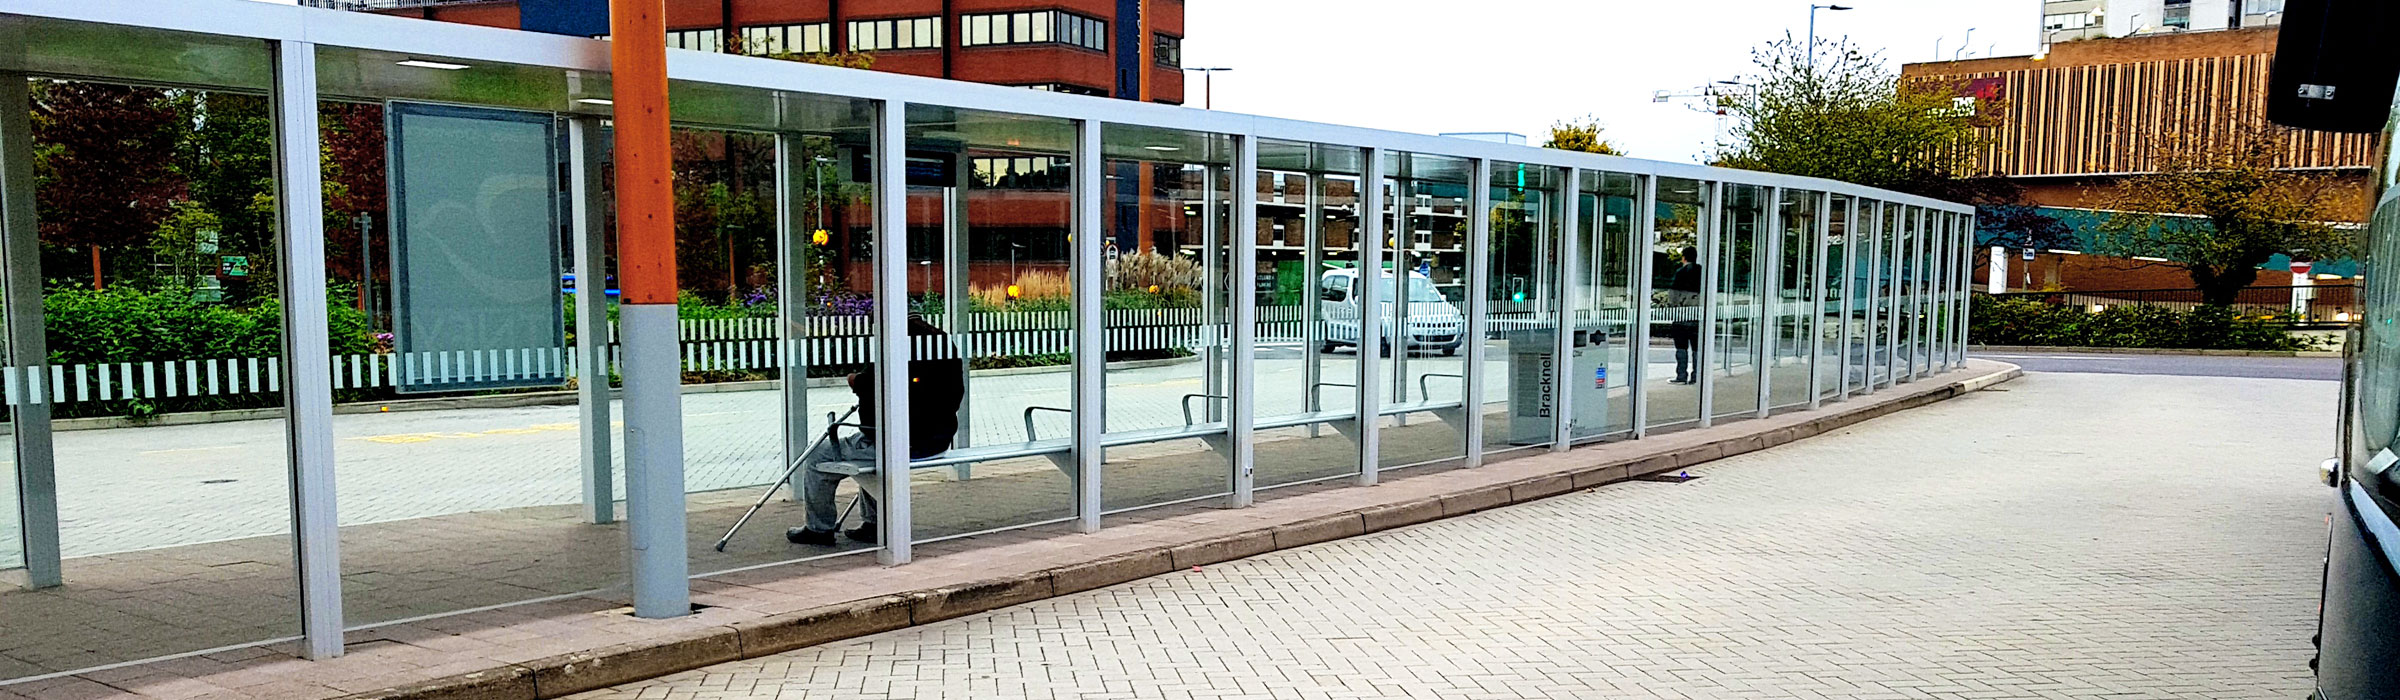 Sharp Bus Shelters - A modern design with a refined touch.